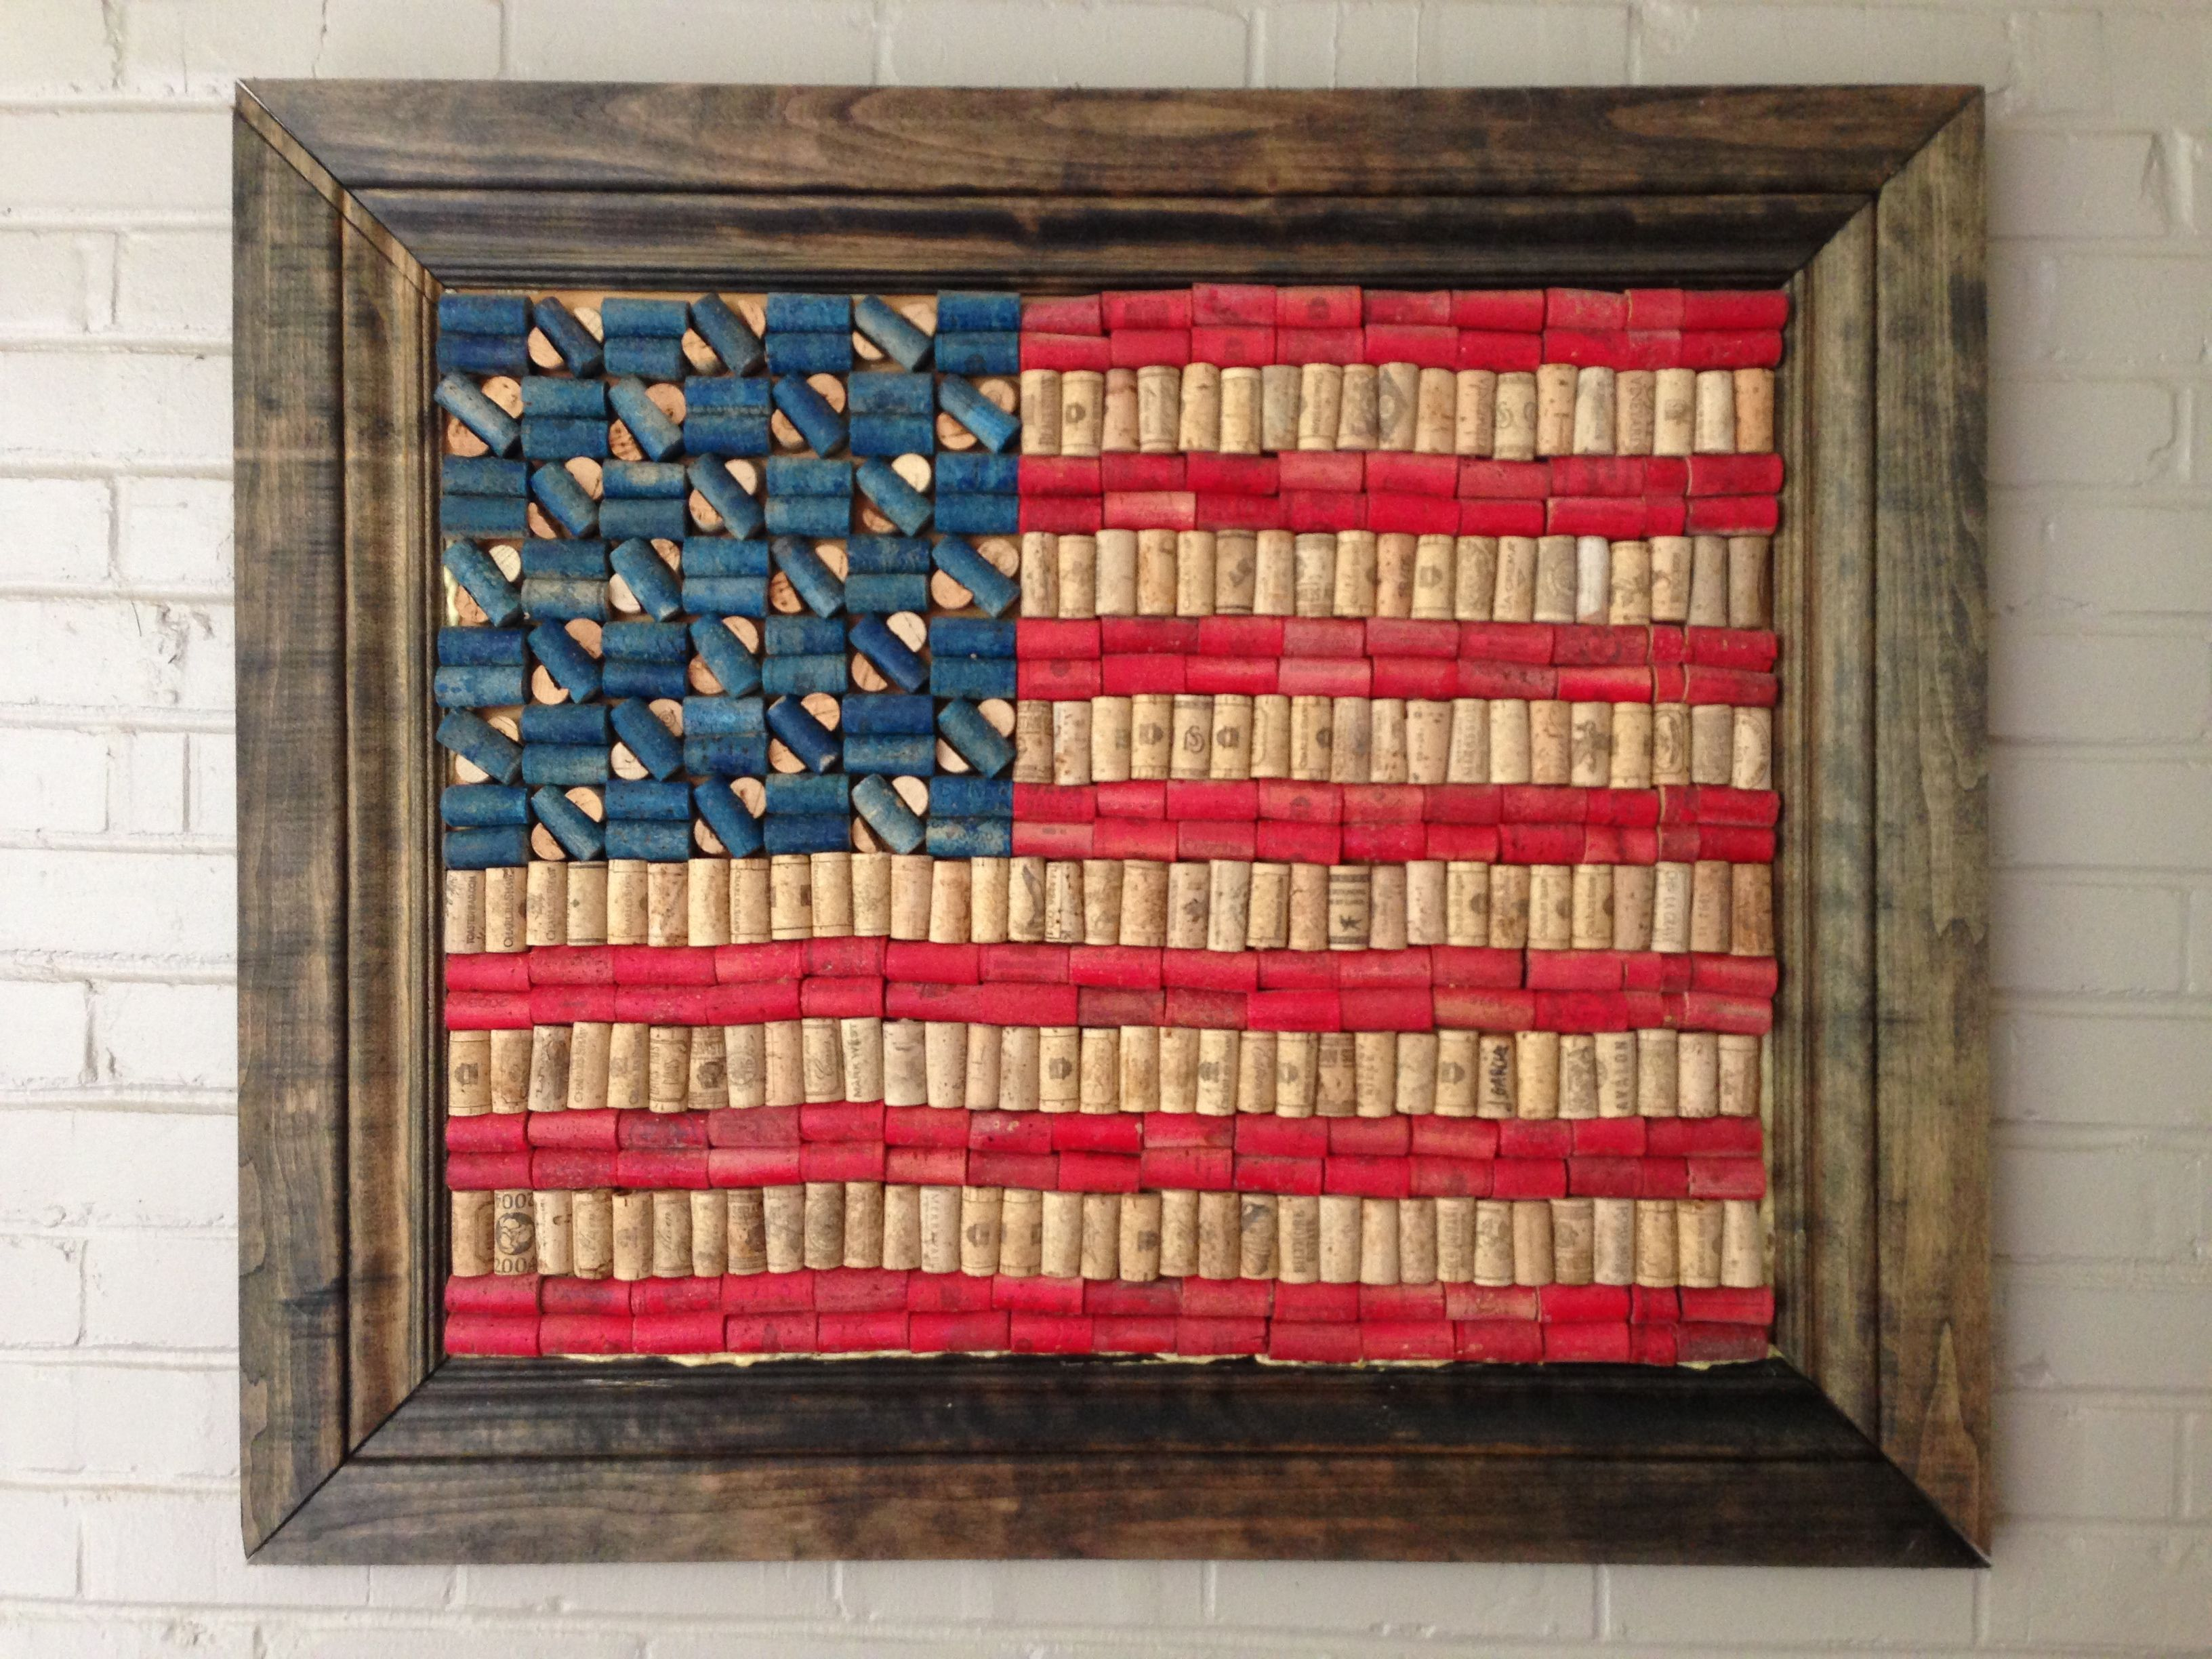 American Flag Made From Wine Corks Perhaps My Next Cork Creation Wine Cork Projects Wine Cork Art Wine Cork Crafts